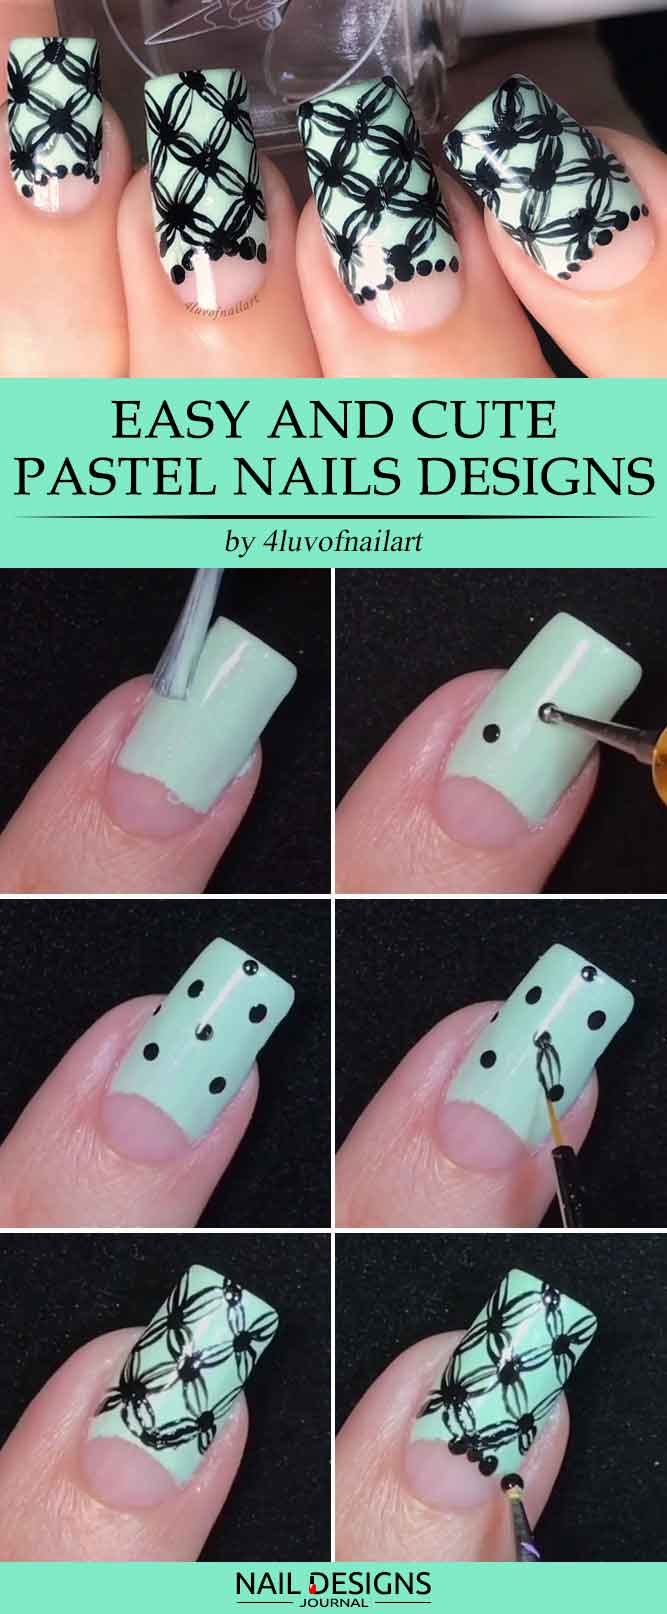 15 super easy nail designs diy tutorials crazyforus easy nail designs with hand painted pattern prinsesfo Gallery